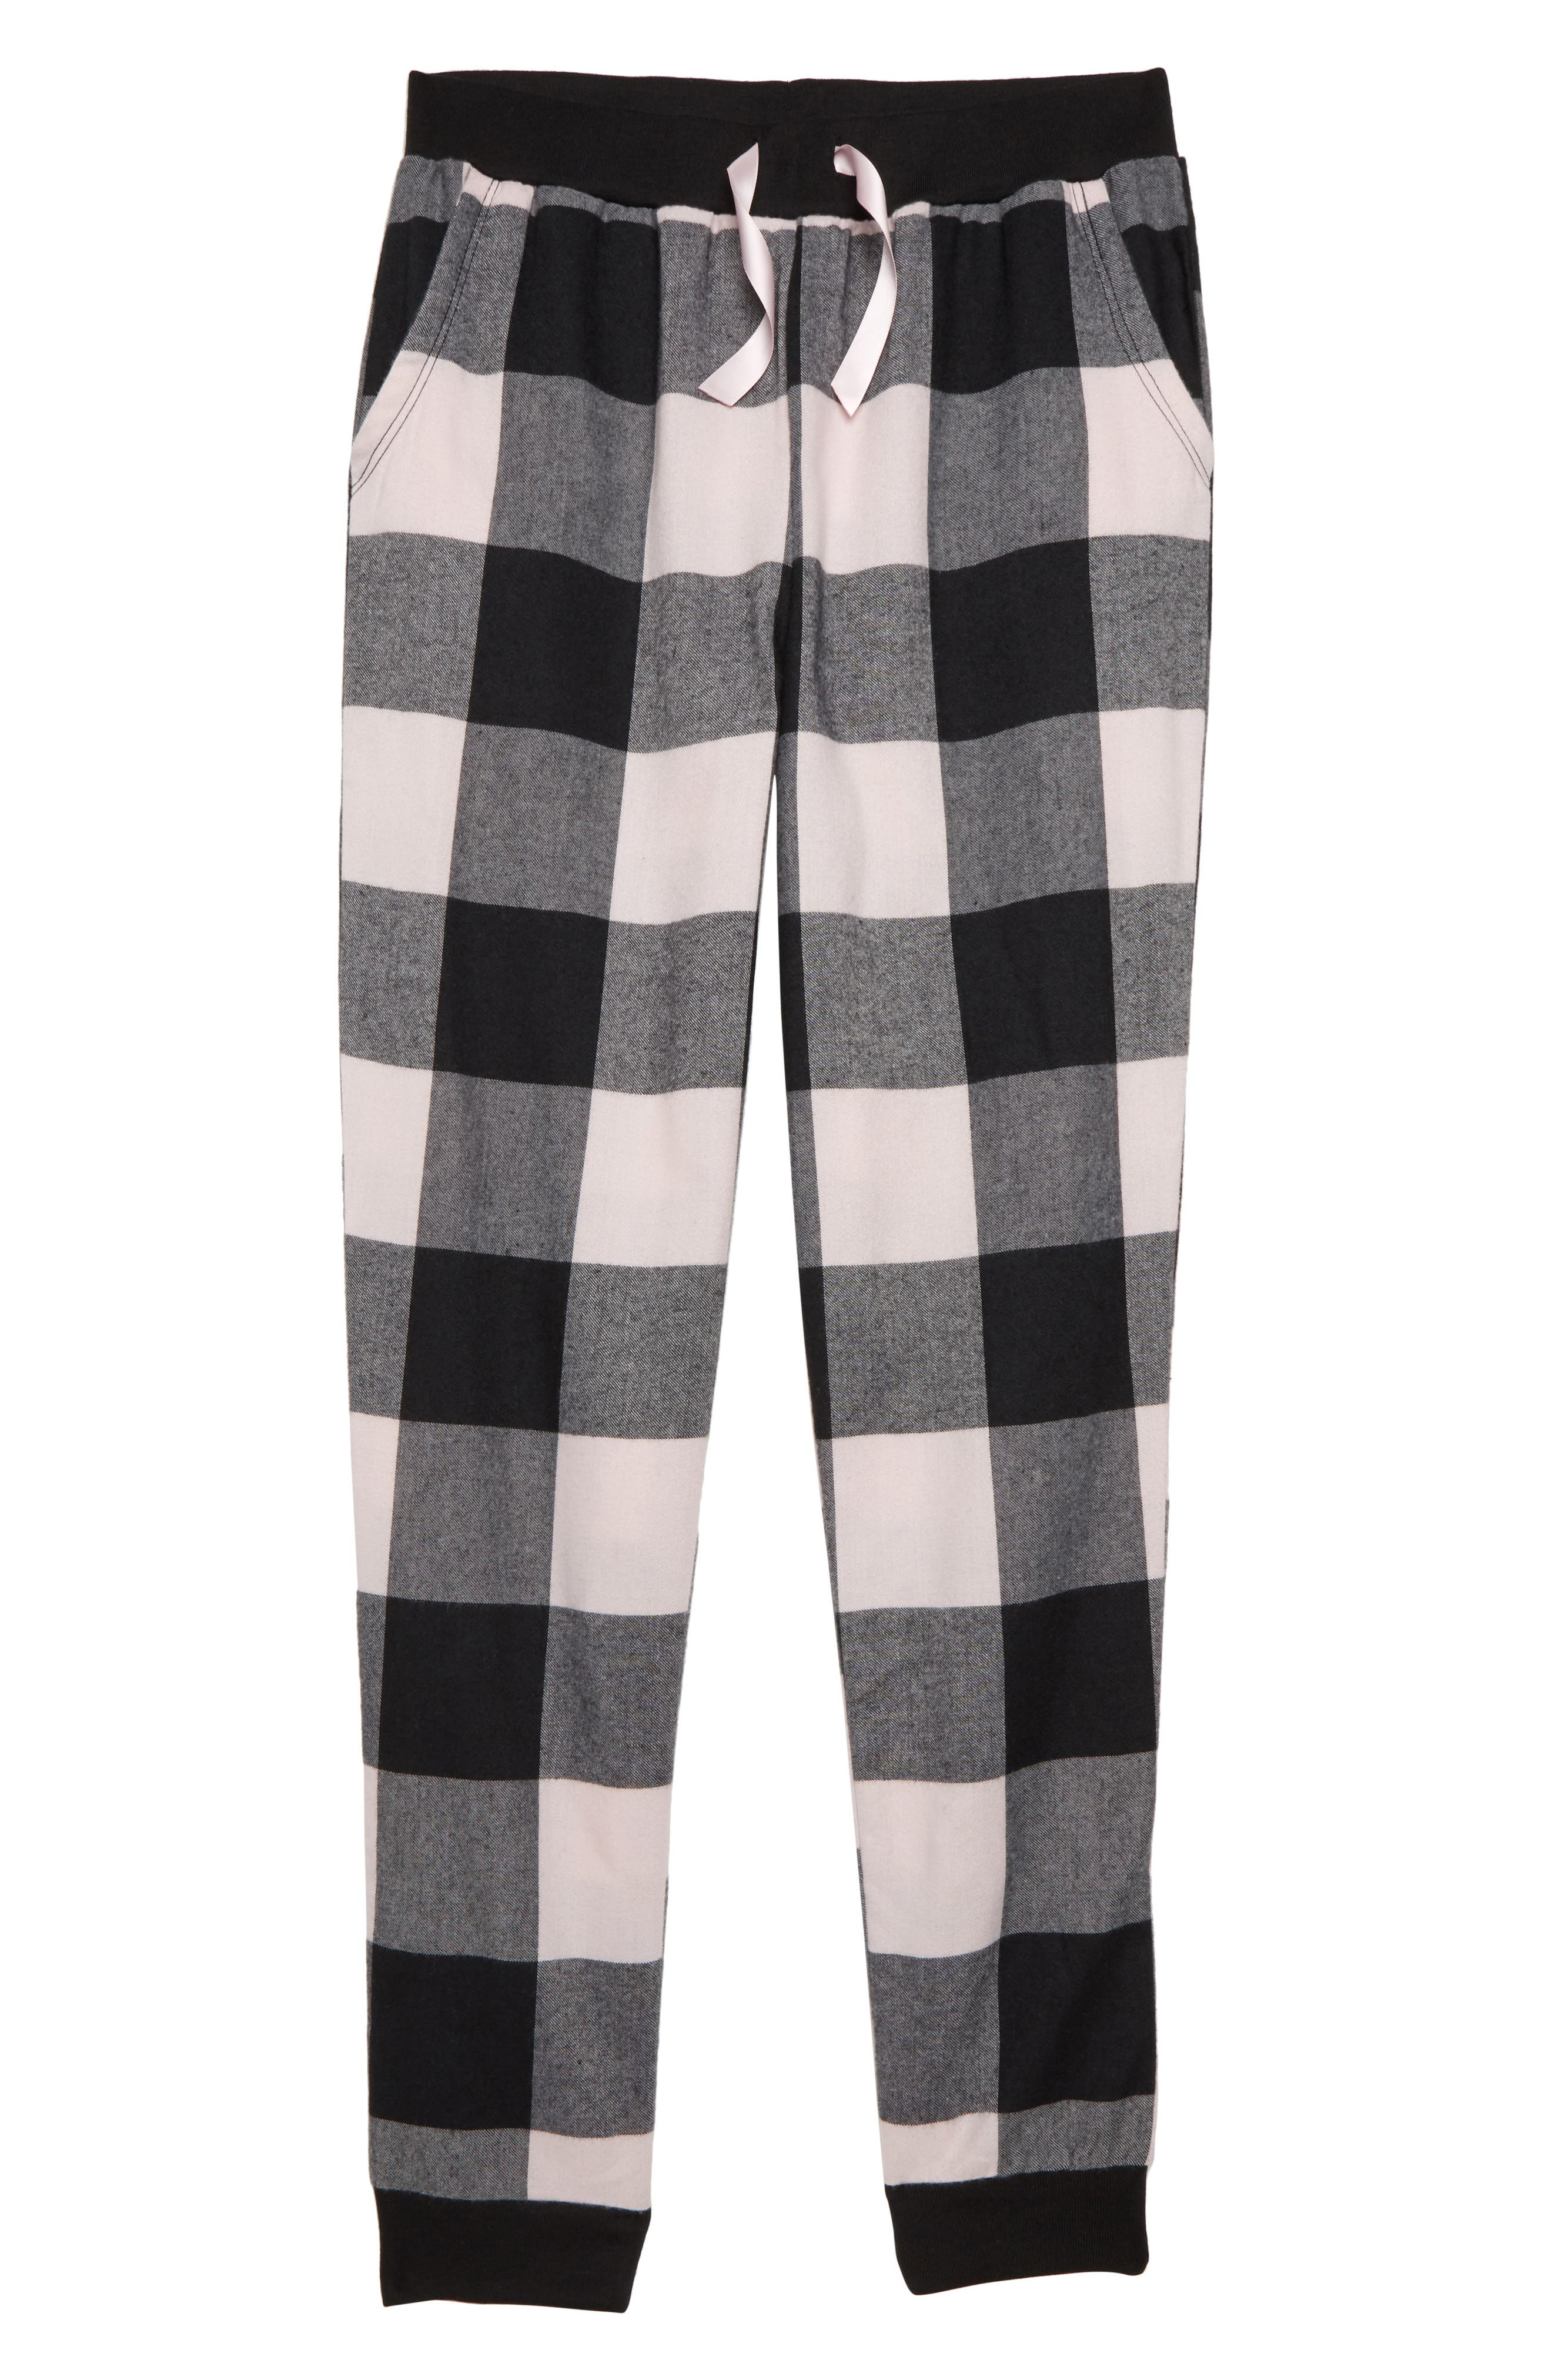 TUCKER + TATE Flannel Pajama Pants, Main, color, BLACK- PINK PLAID